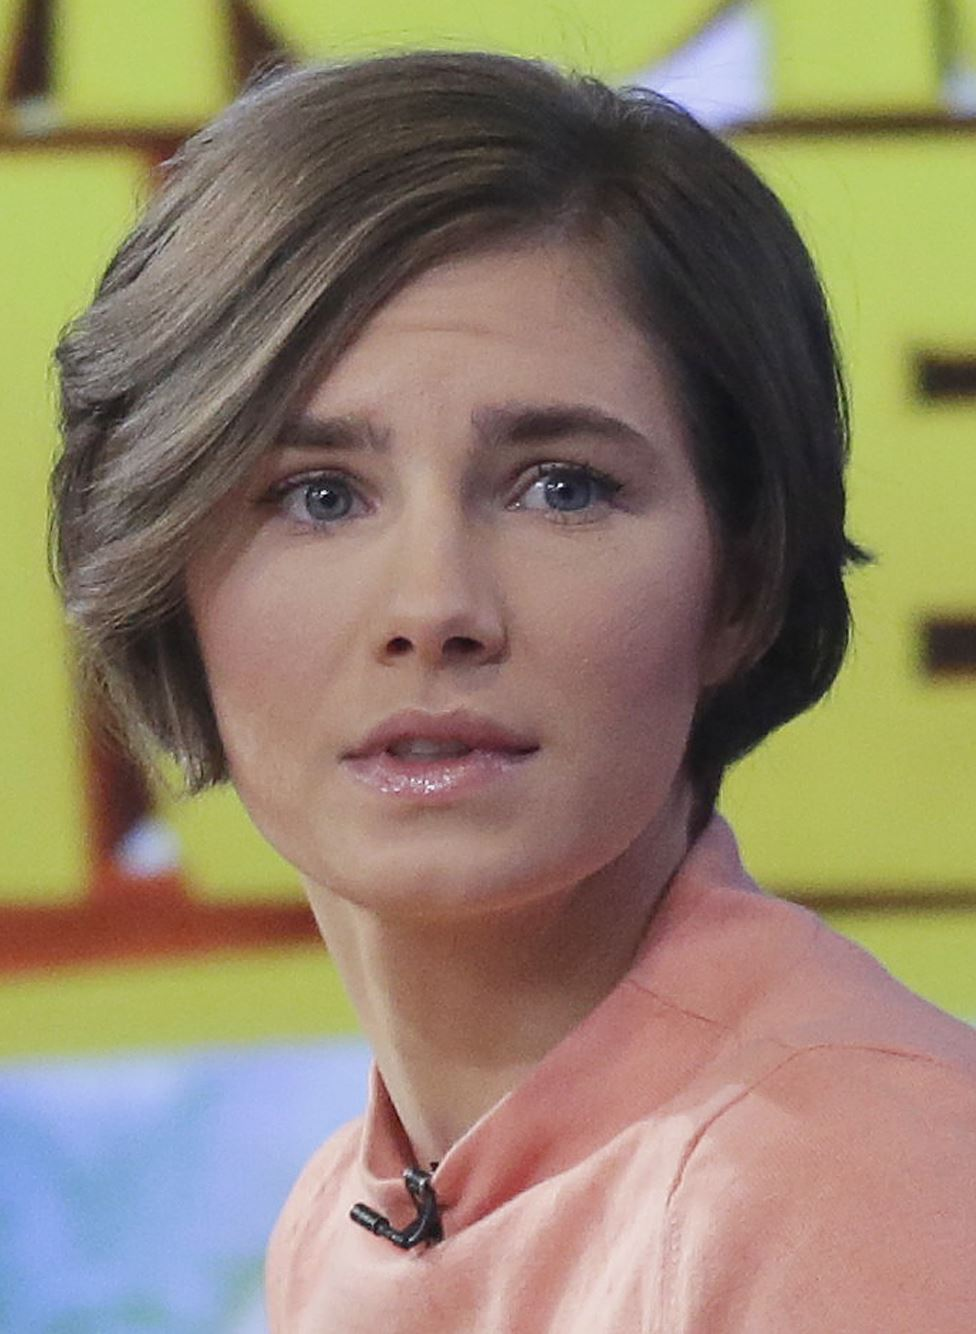 Amanda Knox: 'I will never go willingly back' - The Blade